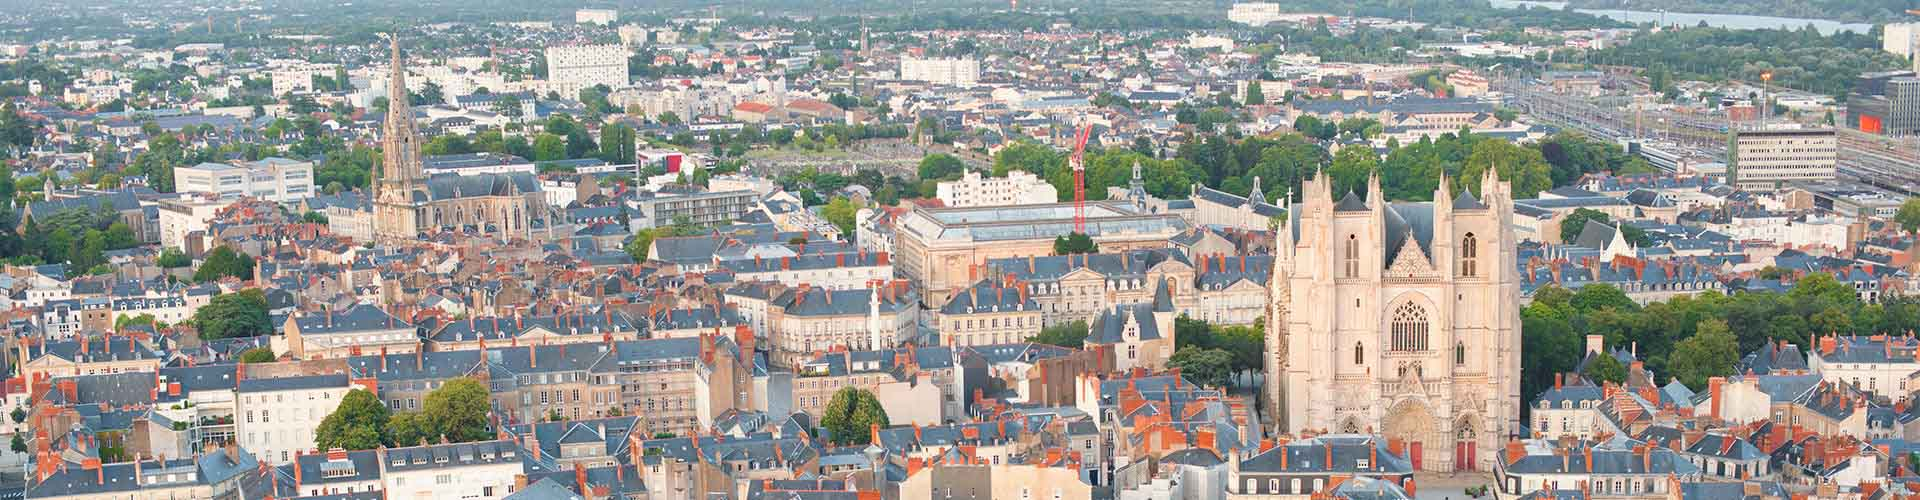 Nantes – Hotels for students in Nantes. Maps of Francia, photos and reviews for each hotel for student in Nantes.